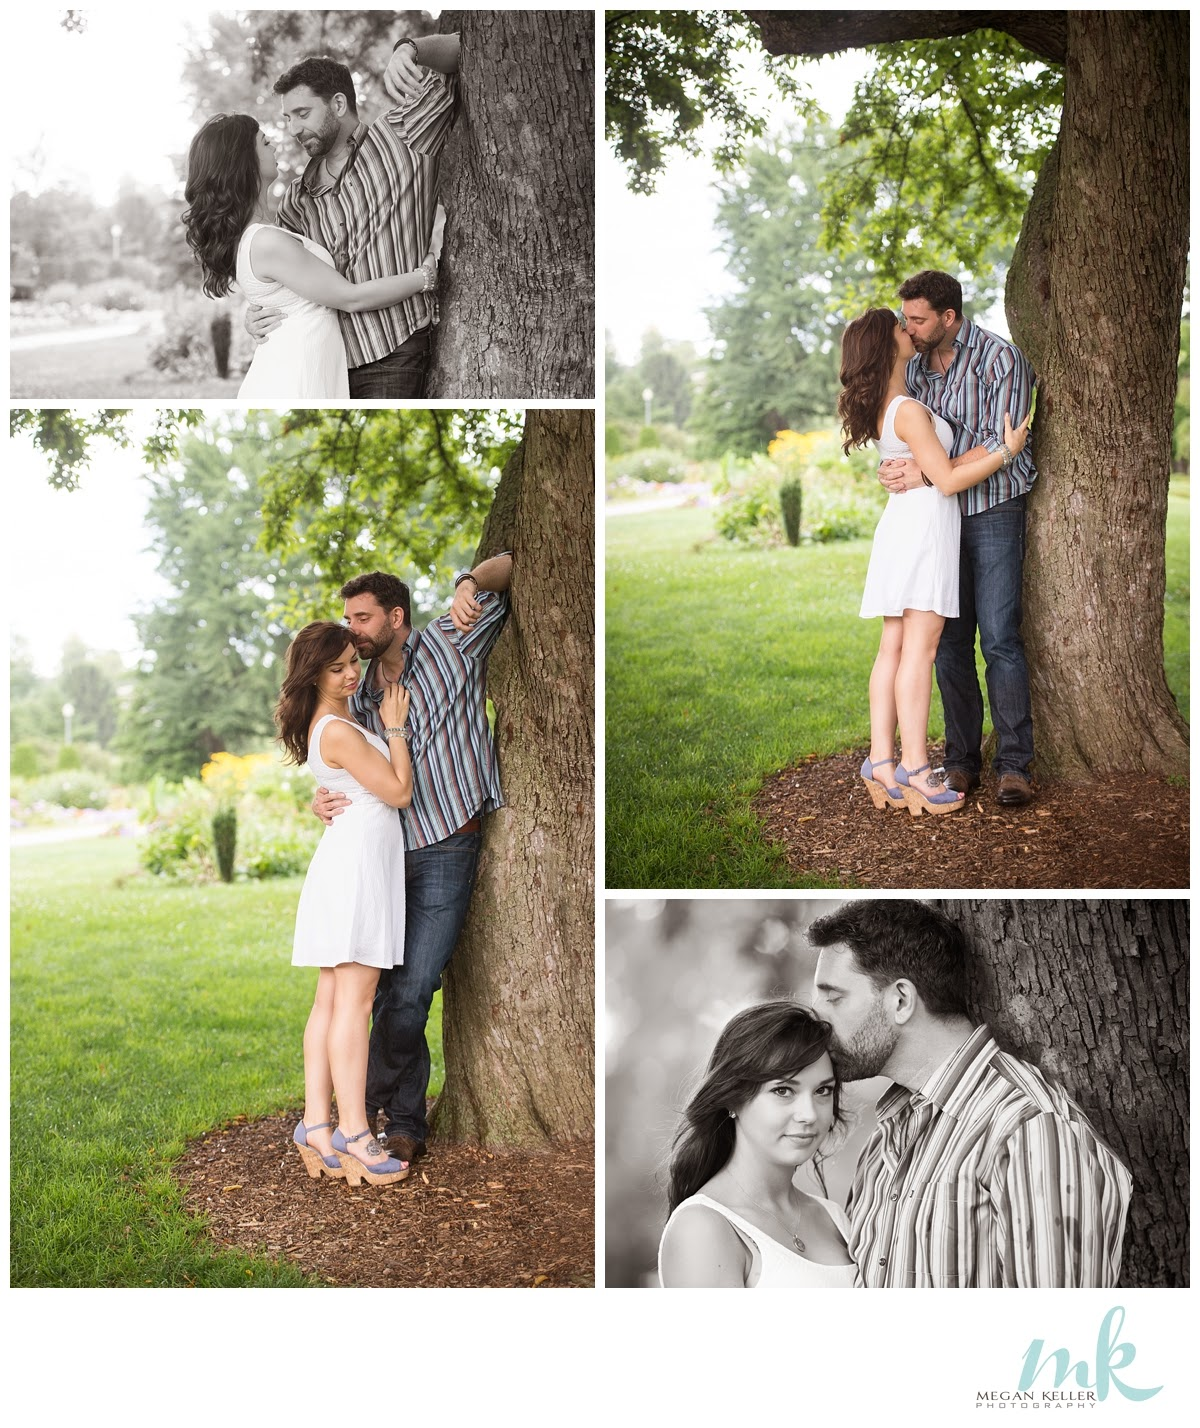 Lauren and Patrick Engagement Session Lauren and Patrick Engagement Session 2014 08 02 0006